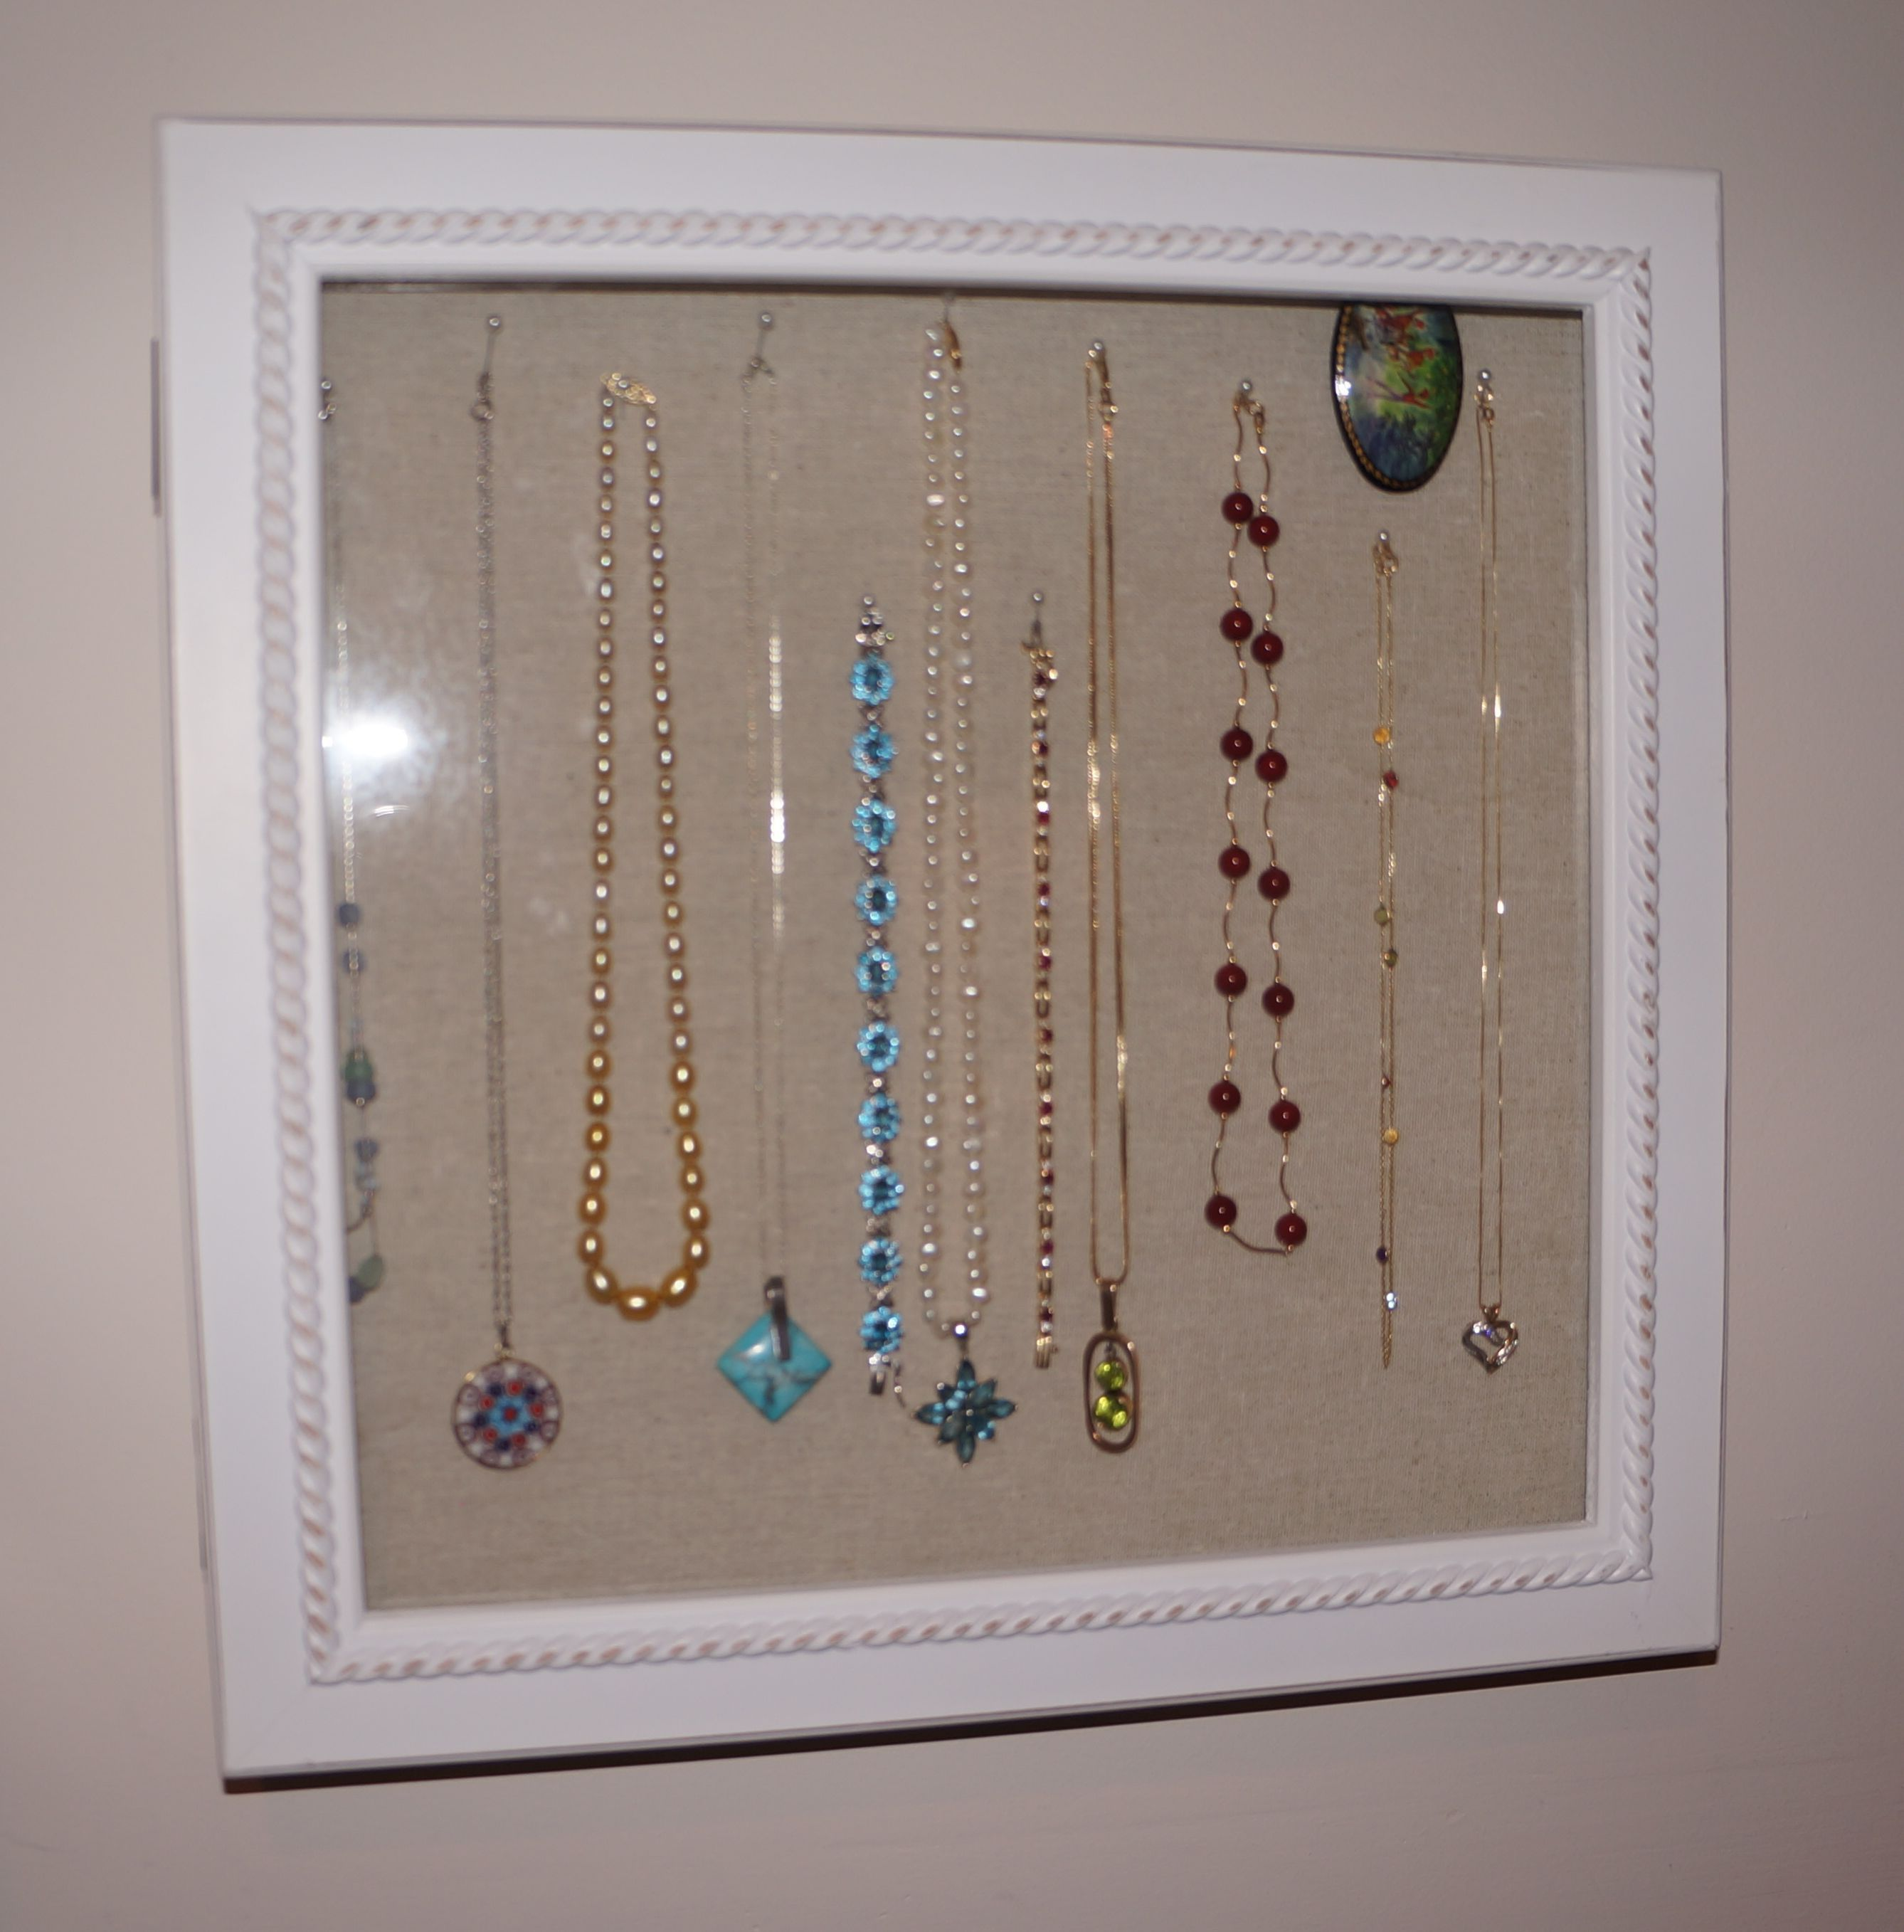 I thought to myself Now this could make a great jewelry organizer